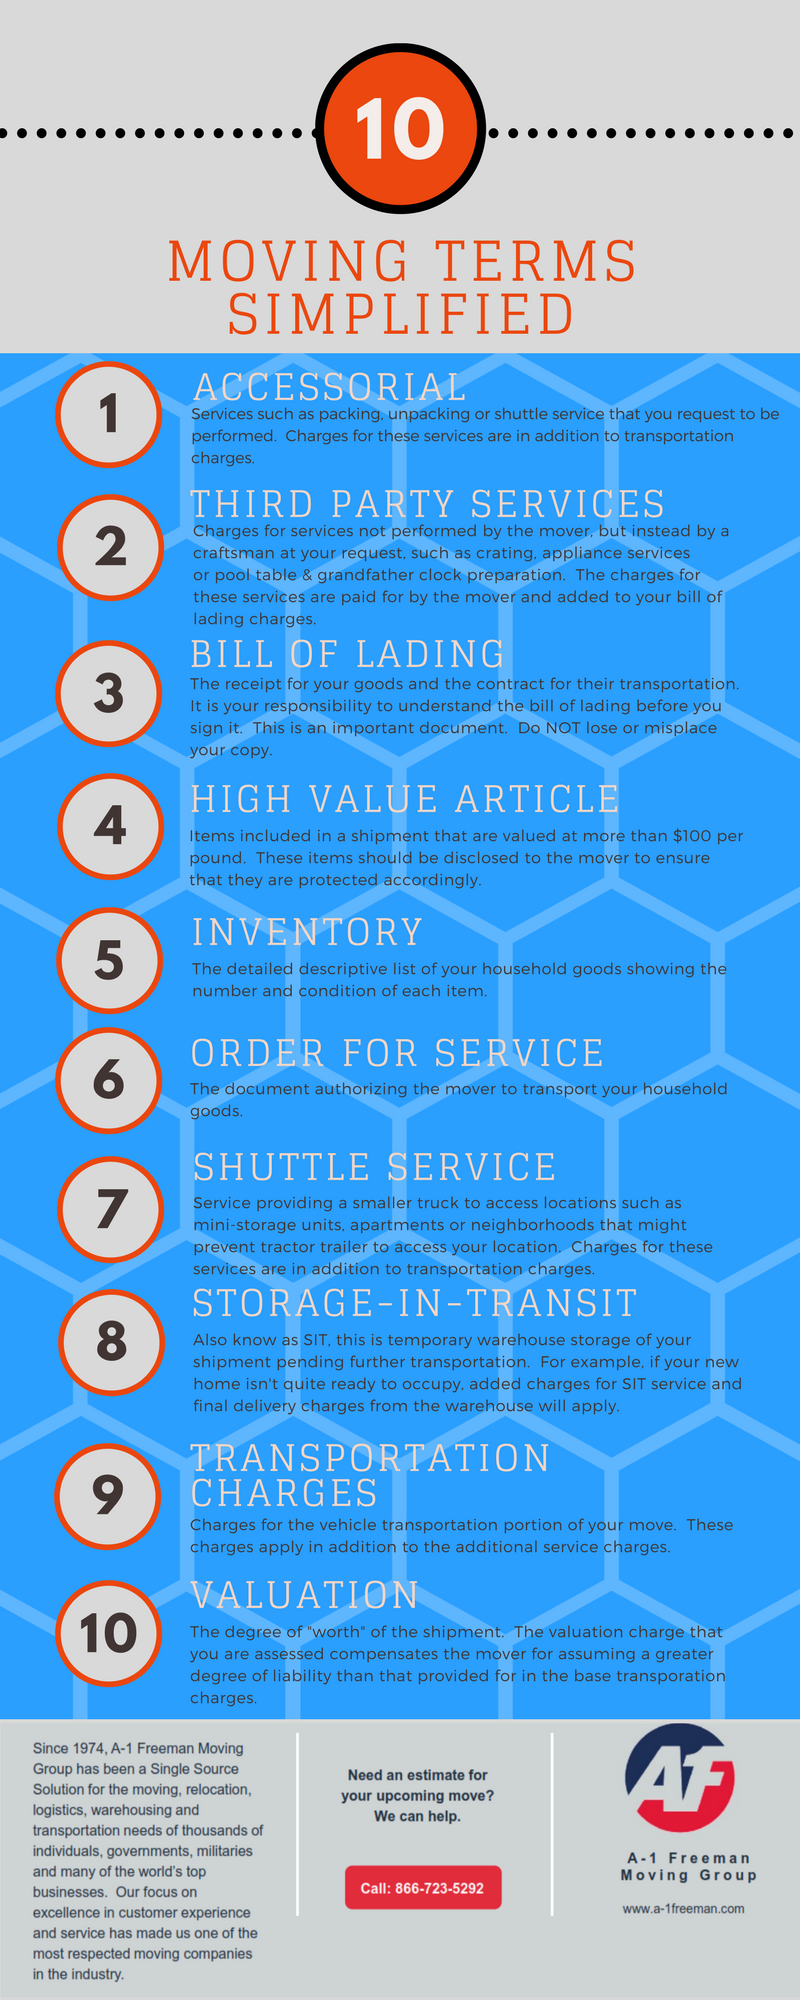 A-1 Freeman Moving Group Oklahoma City Moving Terms Infographic